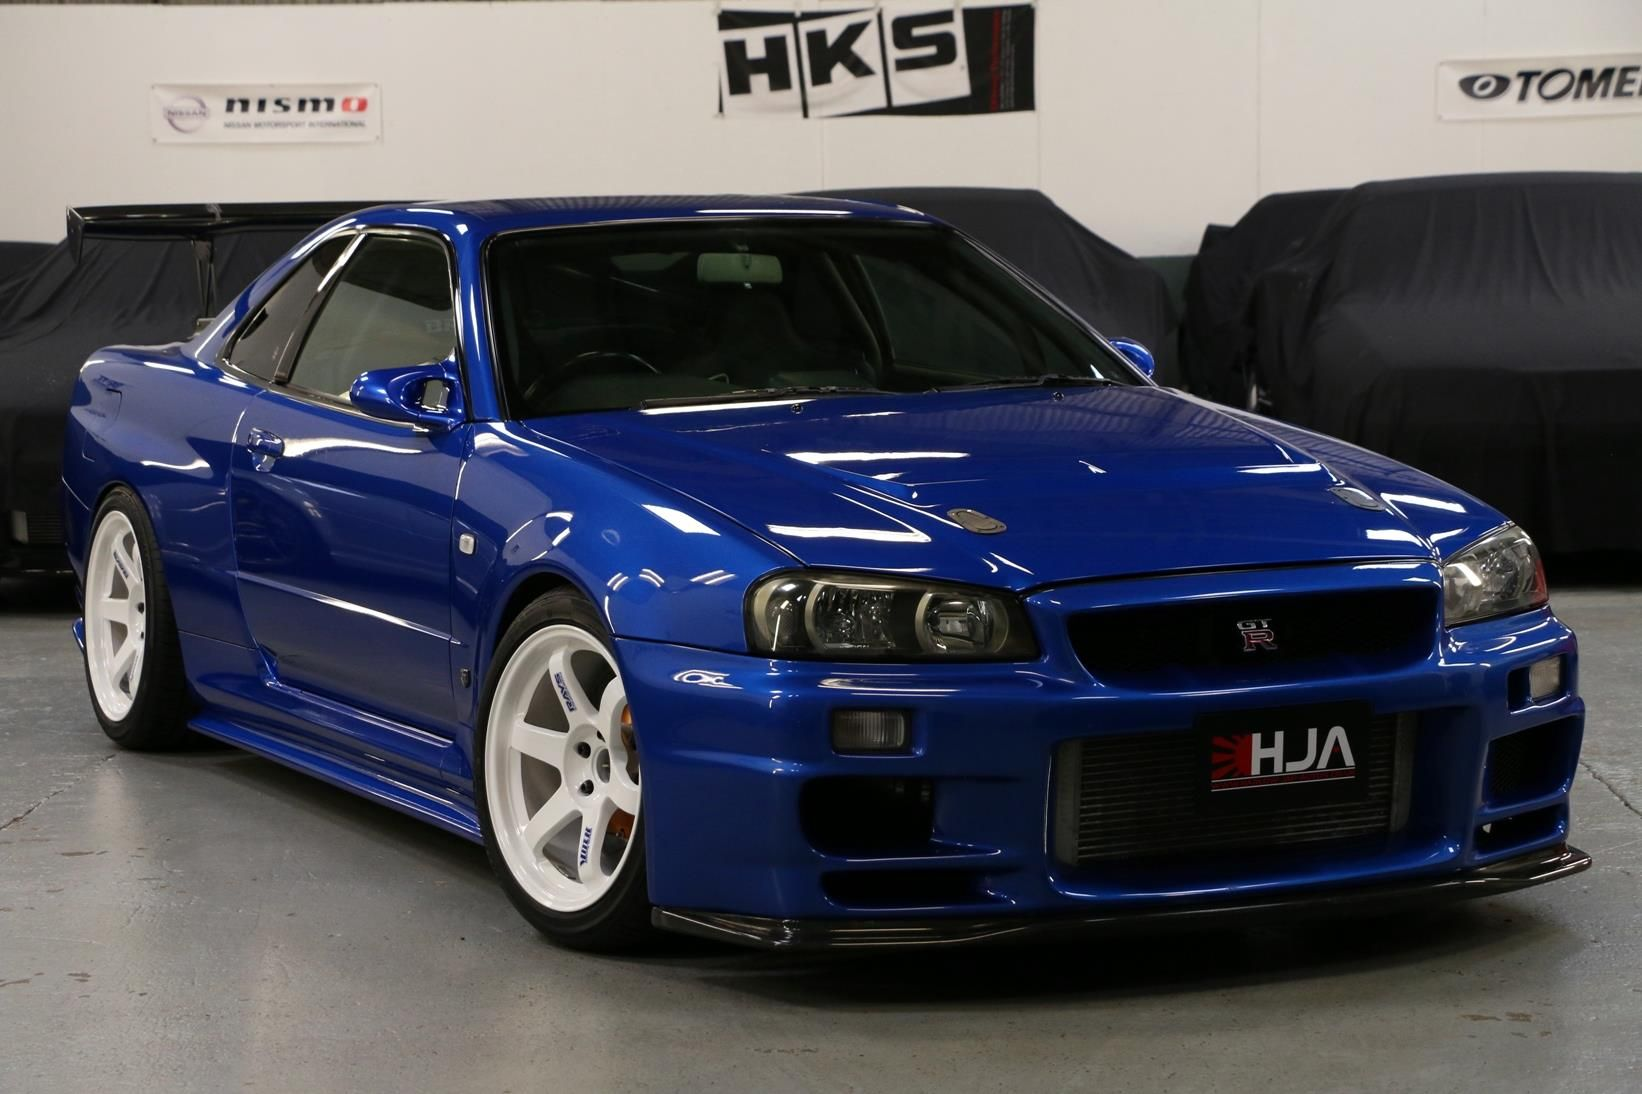 Nissan Gtr R34 For Sale >> Skyline Gtr R34 Blue Used 1999 Nissan Skyline R34 For Sale In